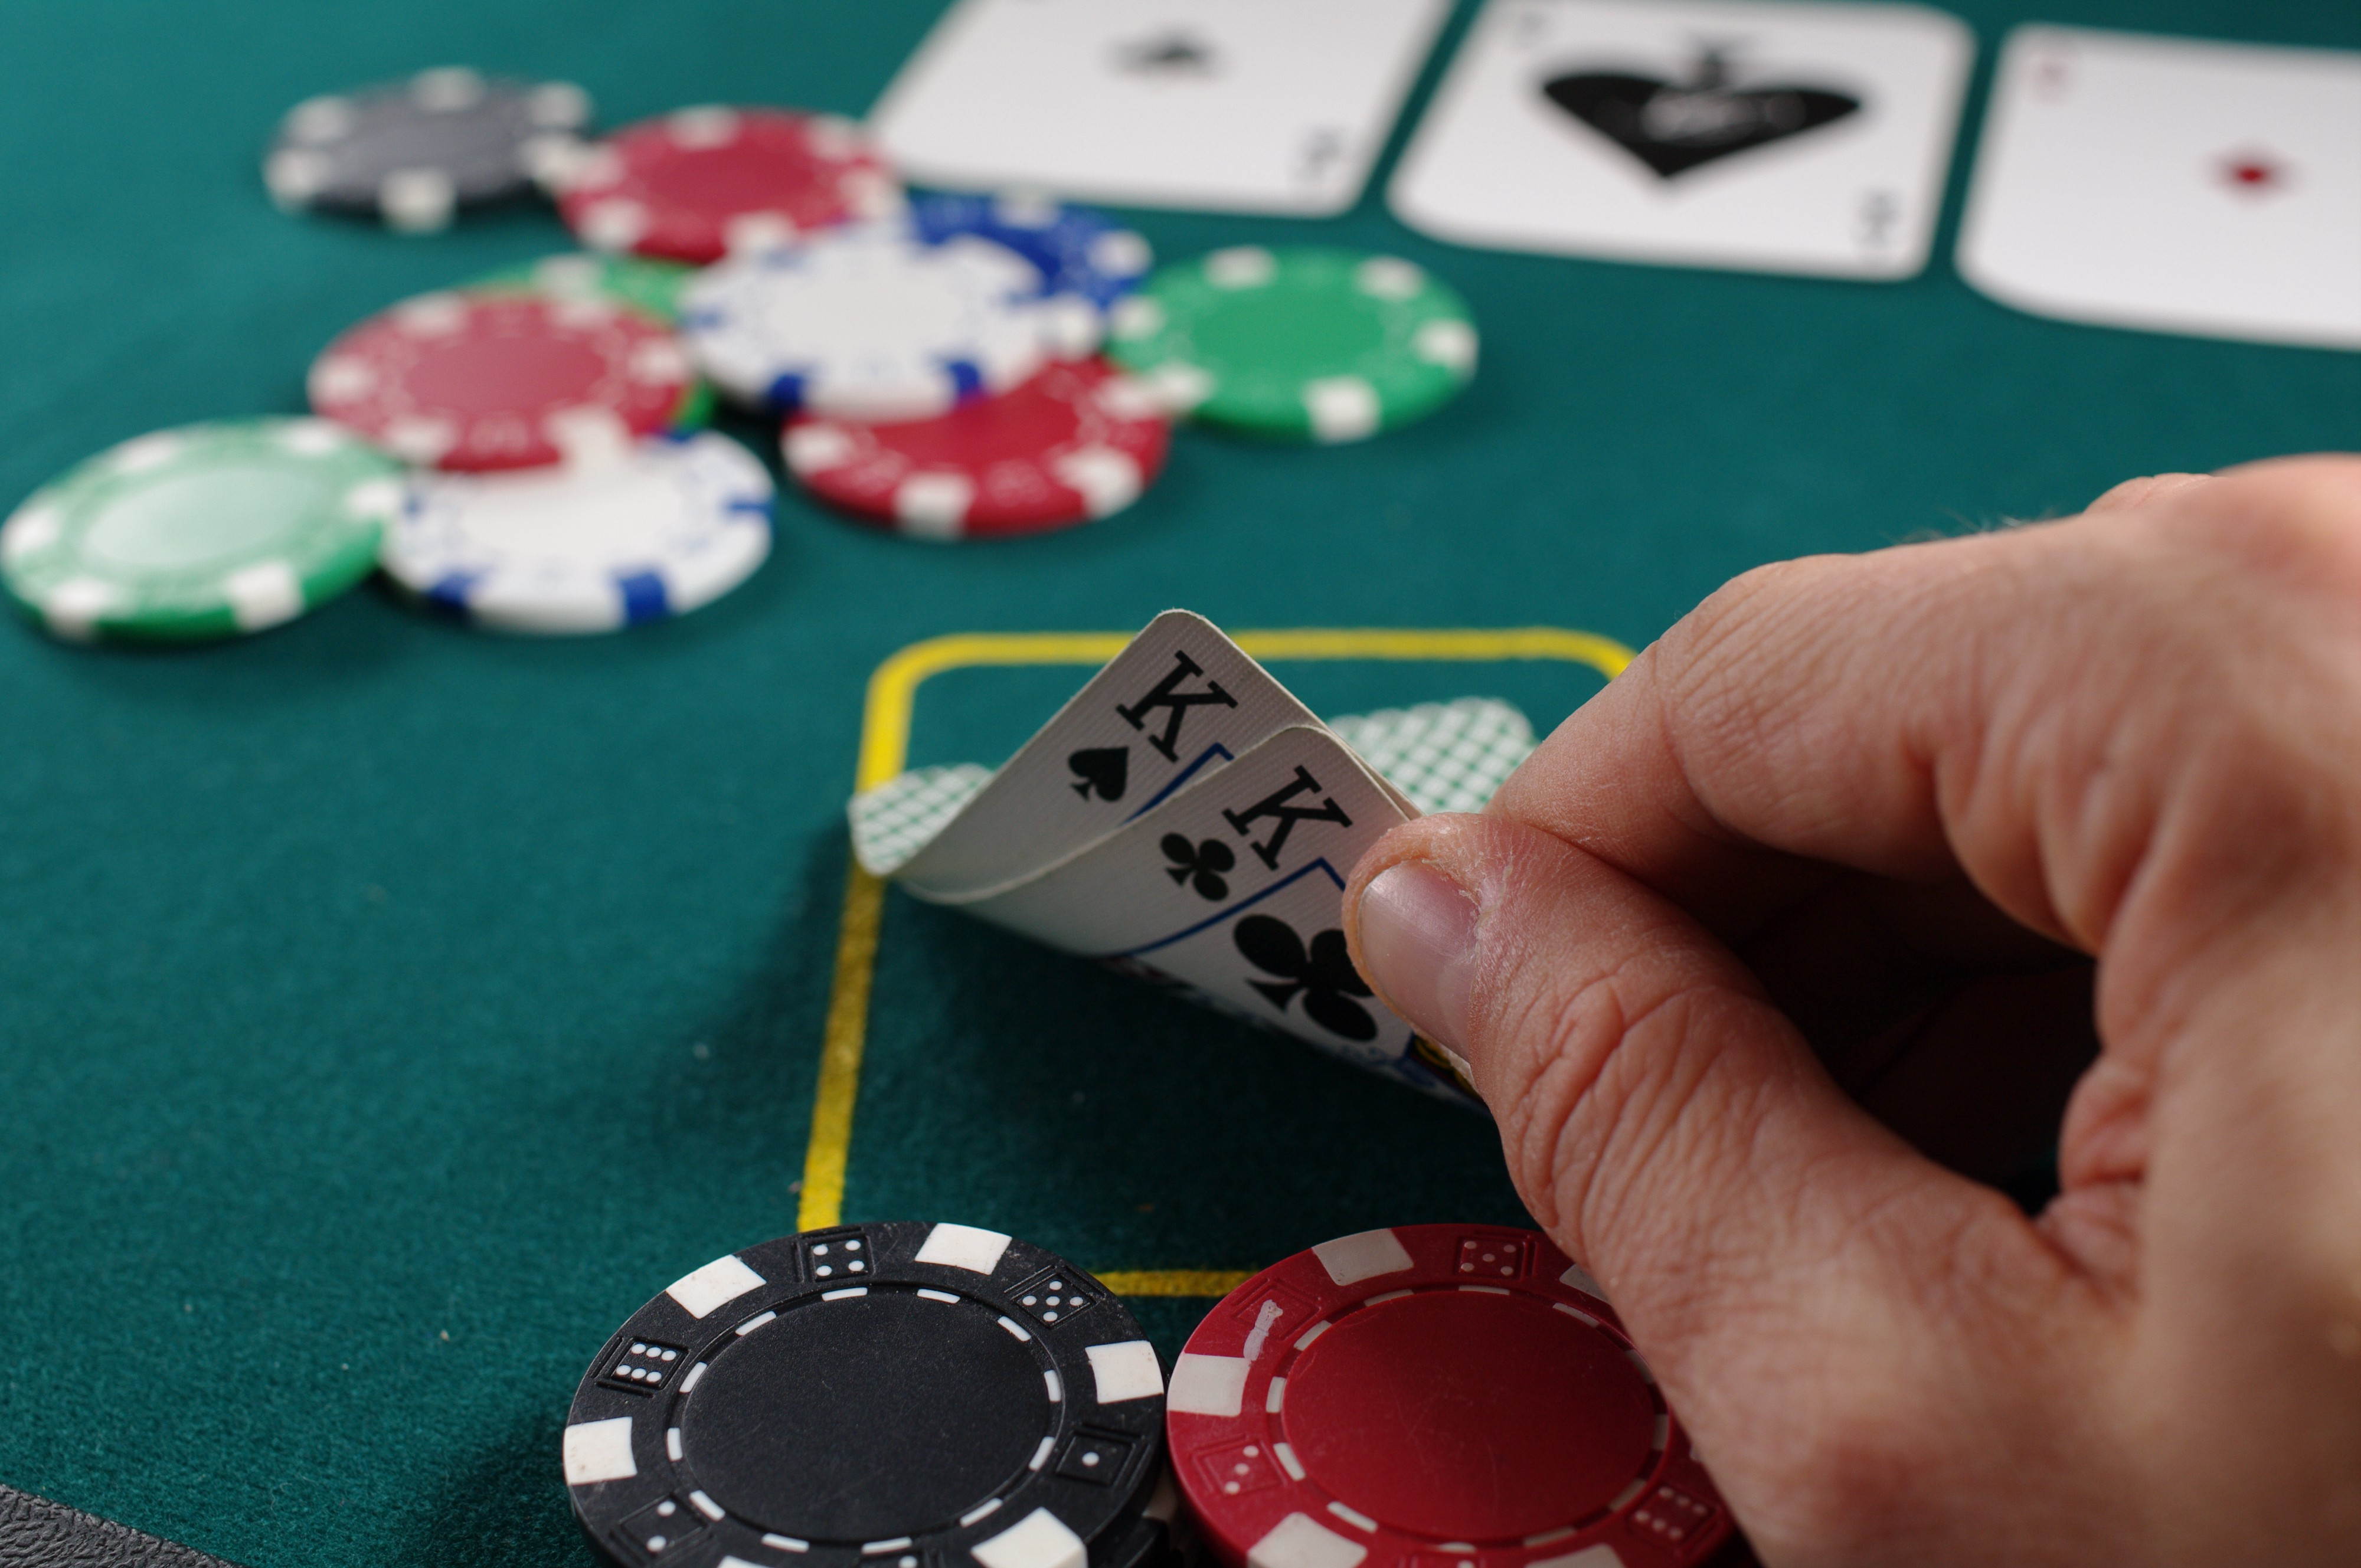 A poker player looking at the hand